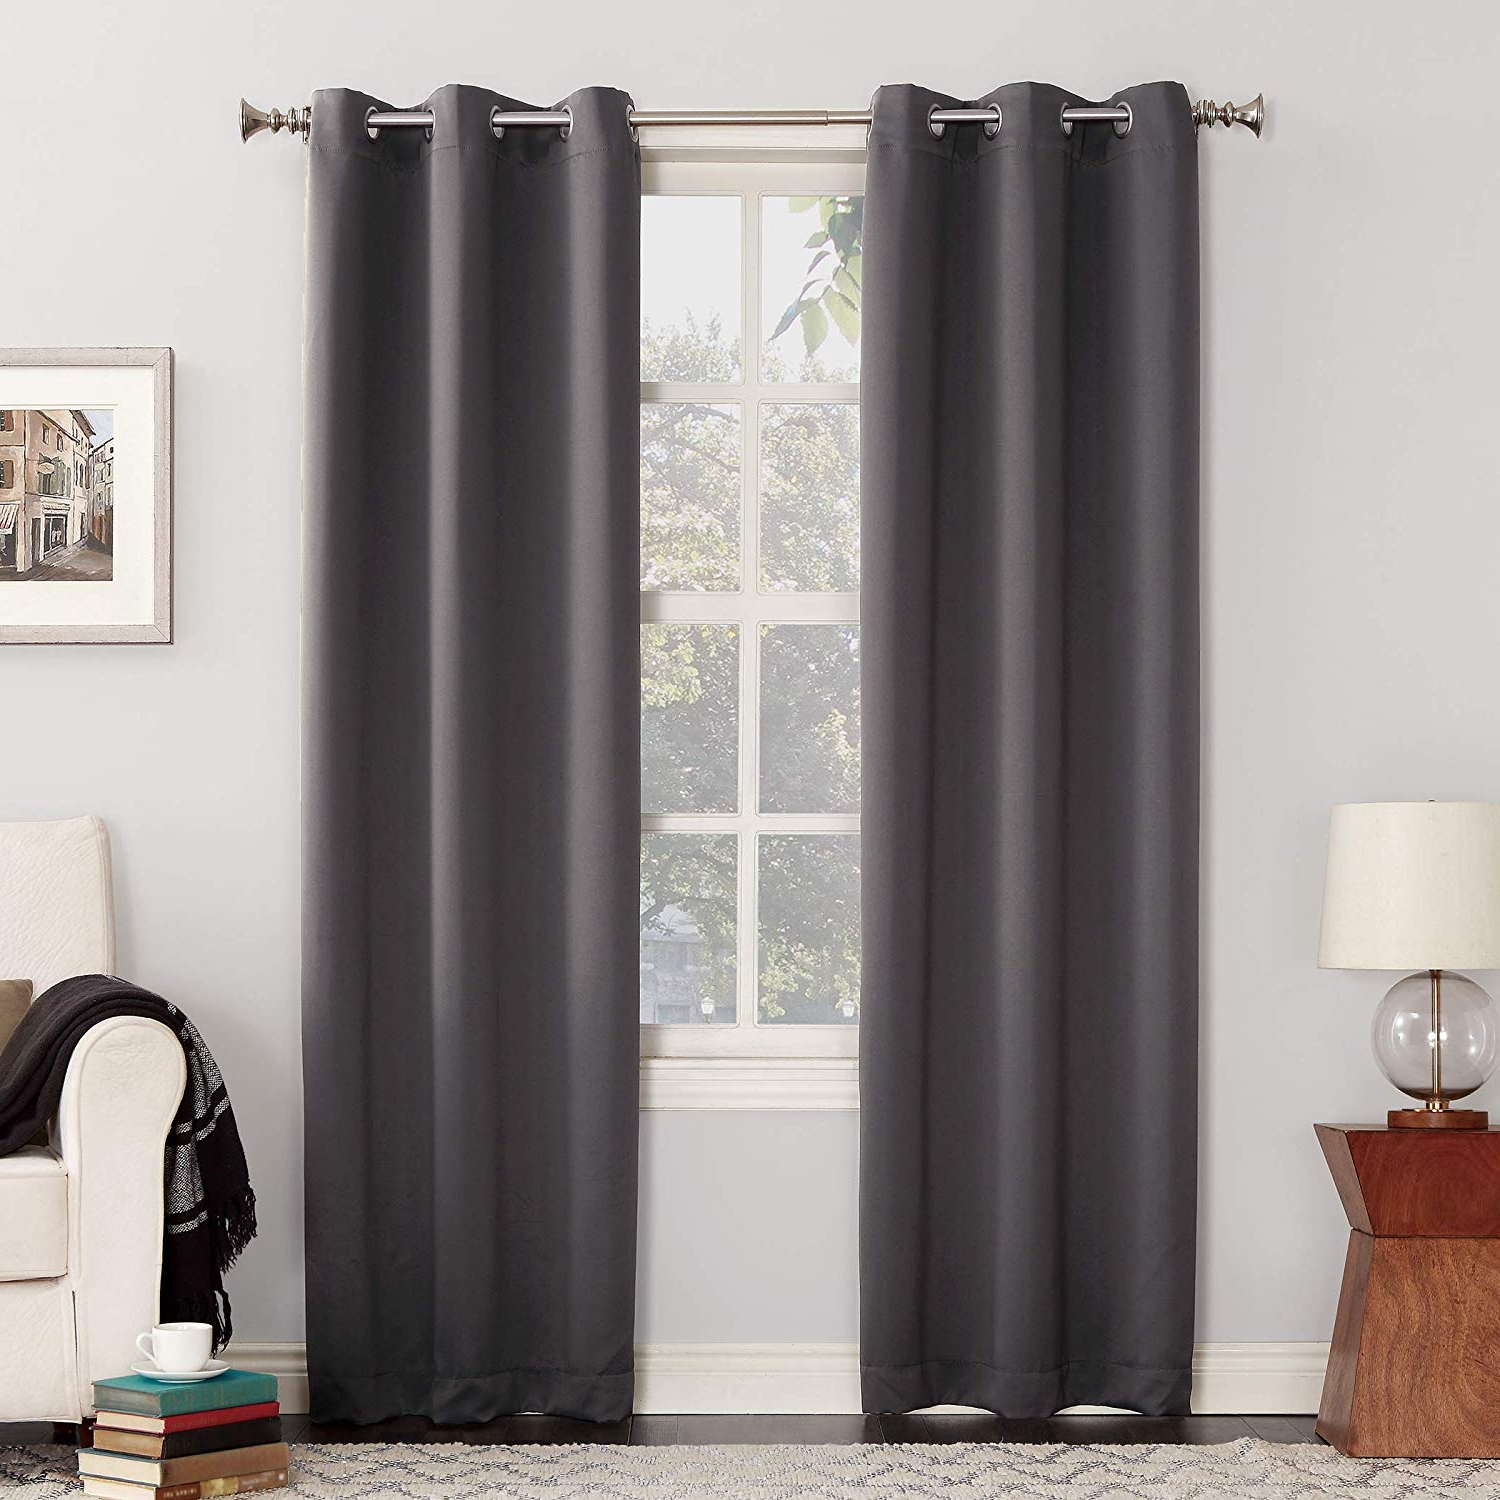 """Grommet Curtain Panels Throughout Well Known Sun Zero Easton Blackout Energy Efficient Grommet Curtain Panel, 40"""" X 84"""", Charcoal Gray (View 19 of 20)"""